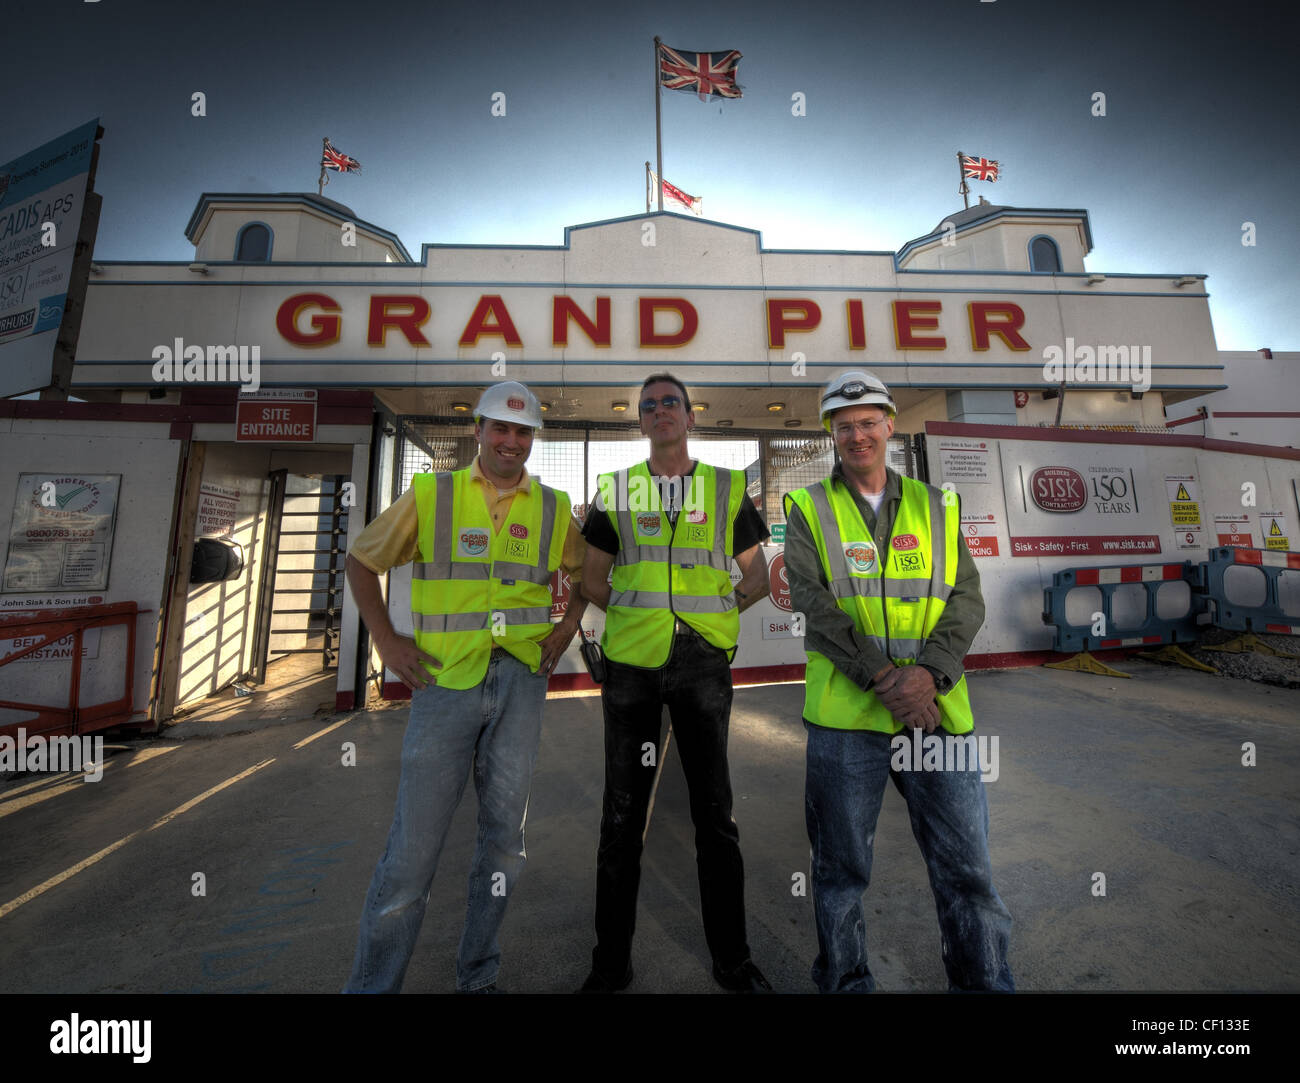 Construction,workers,putting,final,touches,to,the,Grand,Pier,ruined by fire,at,Weston,Super,Mare,Avon,England,UK,gotonysmith,workers,sisk,reopen,reopening,sea,side,seaside,holiday,summer,men,three,union,jack,flag,The,Grand,Pier,is,a,pier,in,Weston-super-Mare,North Somerset,England.,It,is,situated,on,the,Bristol,Channel,approximately,18,miles,(29,km),south,west,of,Bristol.,gotonysmith,The,pier,is,privately-owned,and,is,one,of,three,piers,in,the,town,together,with,Birnbeck,Pier,which,stands,derelict,awaiting,possible,restoration,and,the,much,shorter,SeaQuarium,aquarium,built,towards,the,south,end,of,the,seafront.,It,is,supported,by,600,iron,piles,and,is,400,metres,(1,300,ft),long.,It,has,been,damaged,by,fire,on,two,occasions,in,1930,and,2008.,Following,the,latter,fire,which,completely,destroyed,the,pavilion,the,pier,was,rebuilt,at,a,cost,of,£39,million,and,reopened,on,23,October,2010,Buy Pictures of,Buy Images Of